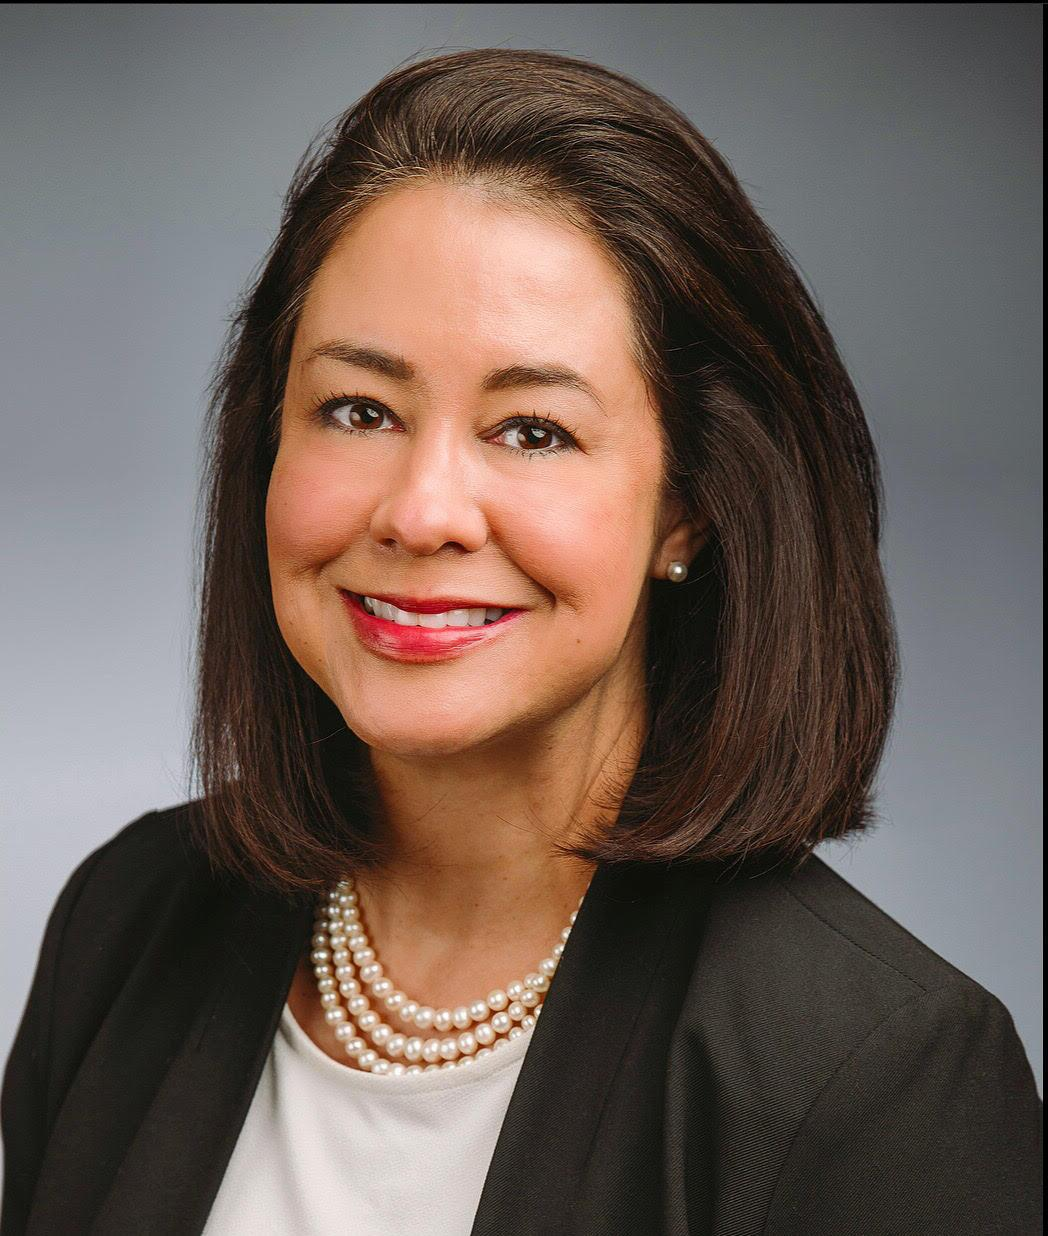 Headshot of Ashley Jacobs, Chief Information and Innovation Officer